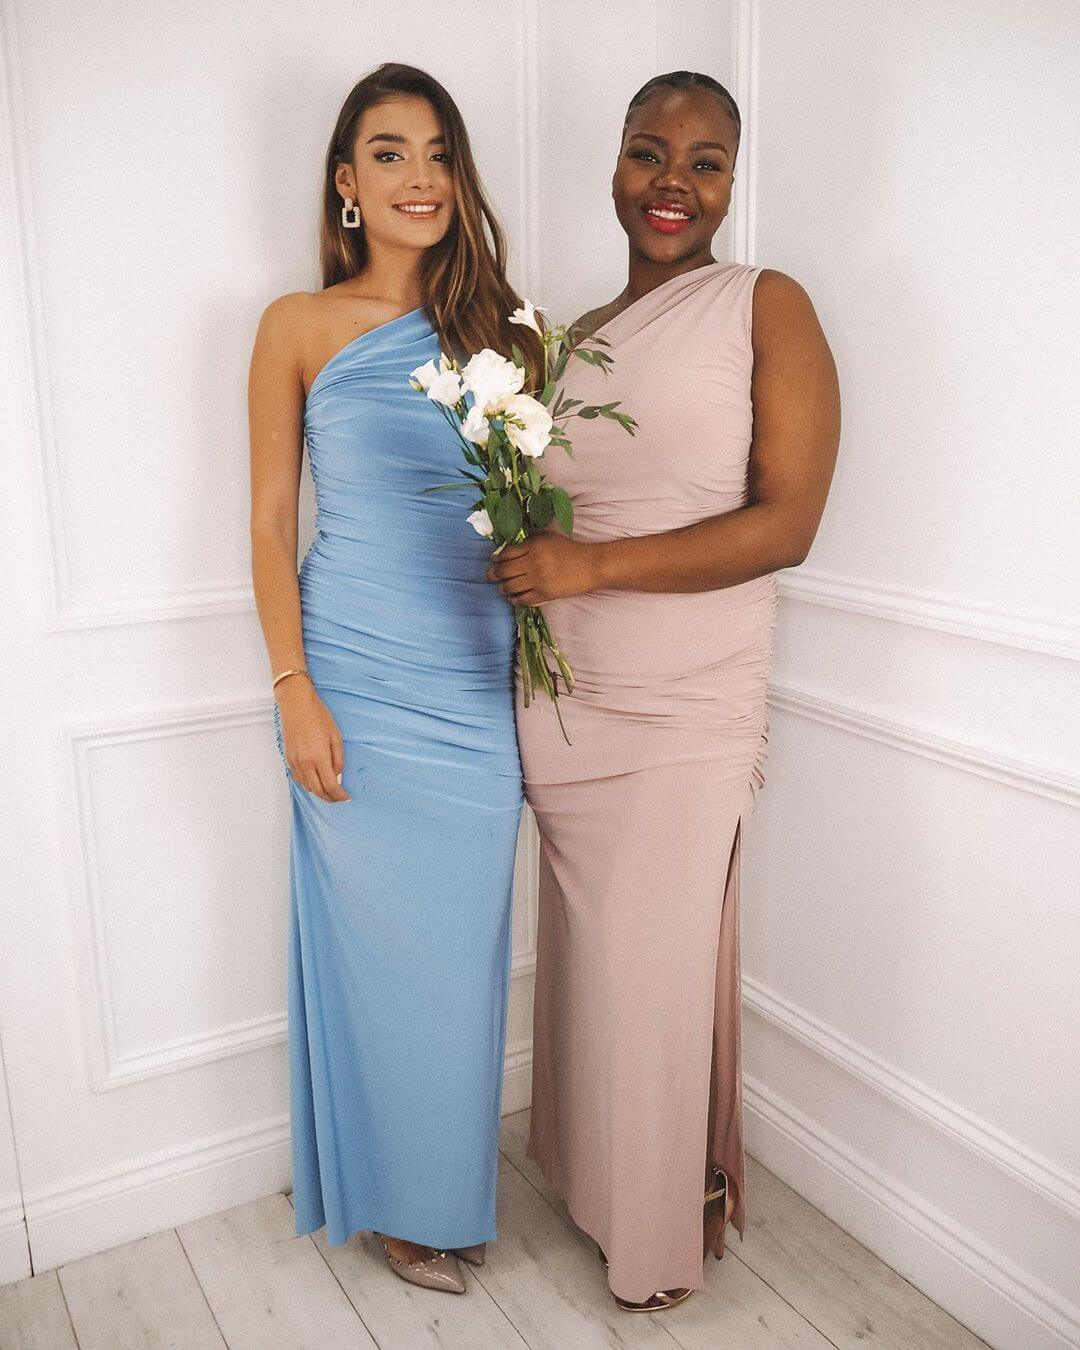 Two models wear the same one shoulder ruched maxi dress, one wearing blue and the other in light grey